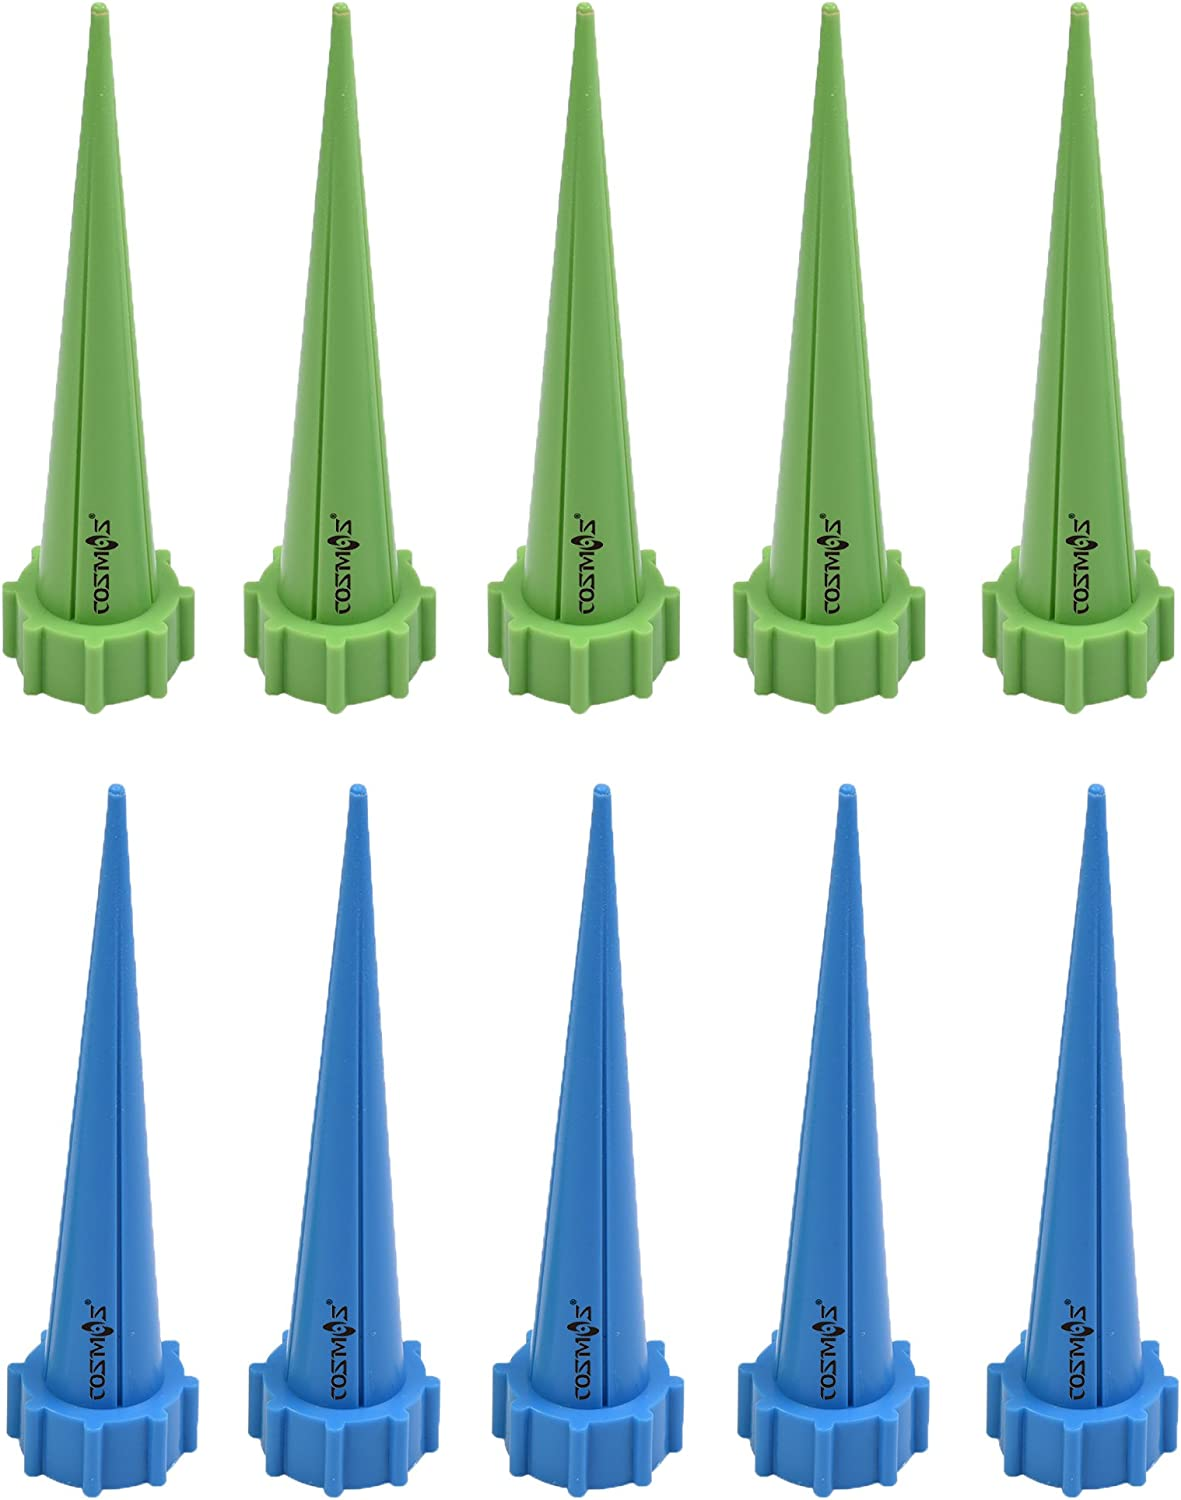 Cosmos Plastic Plant Watering Spikes Water Bottles Economical System (Blue&Green)